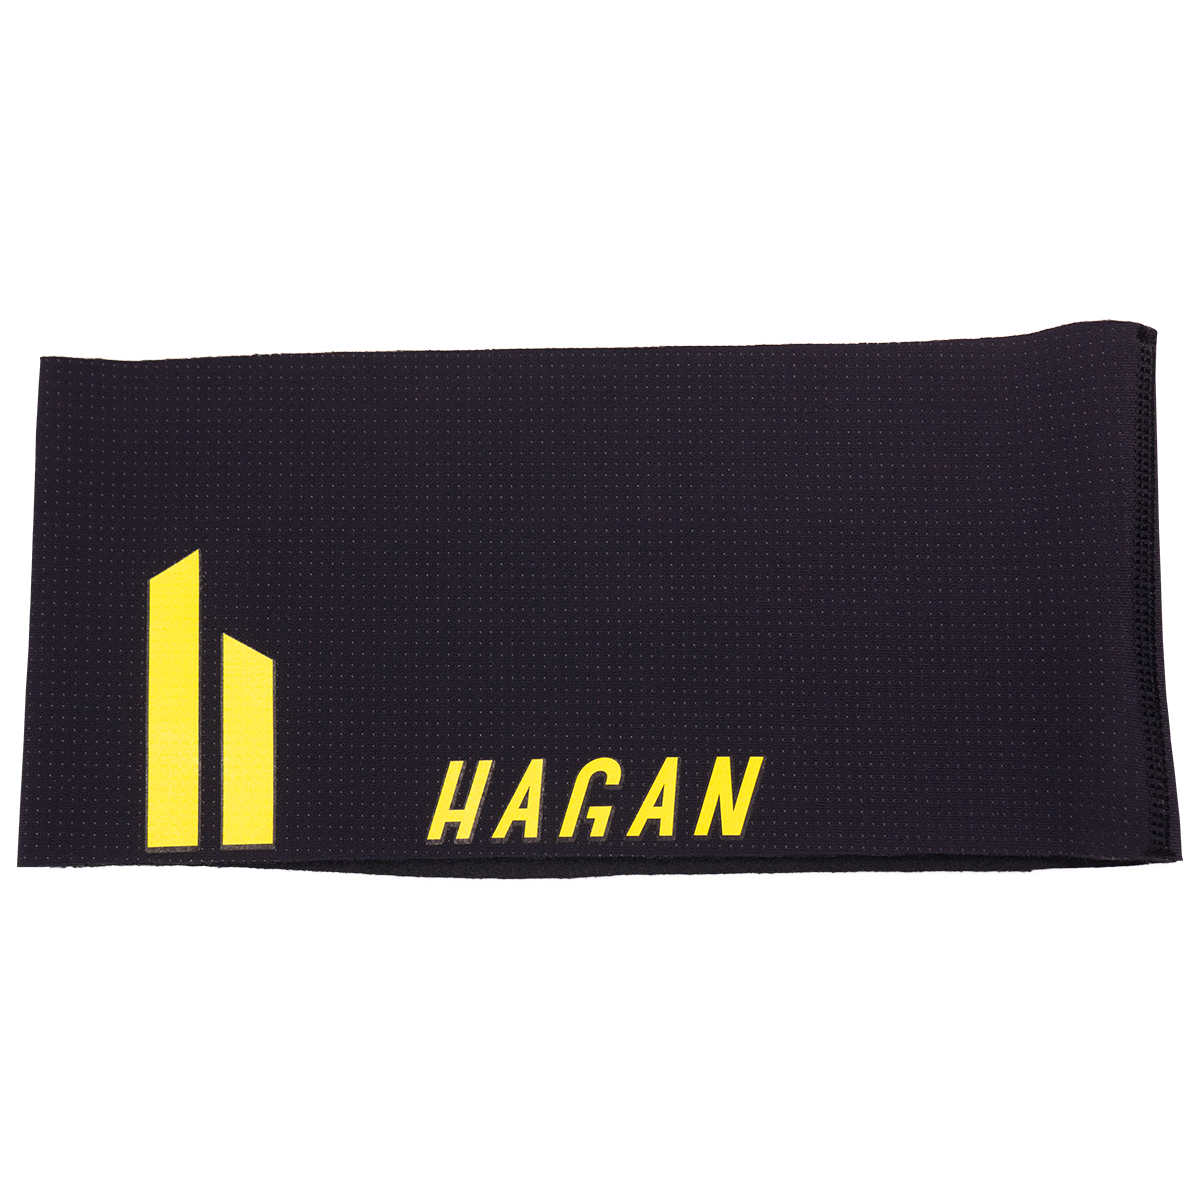 Headband Sport, Clothing - Hagan Ski Mountaineering Alpine Ski Touring Backcountry Gear